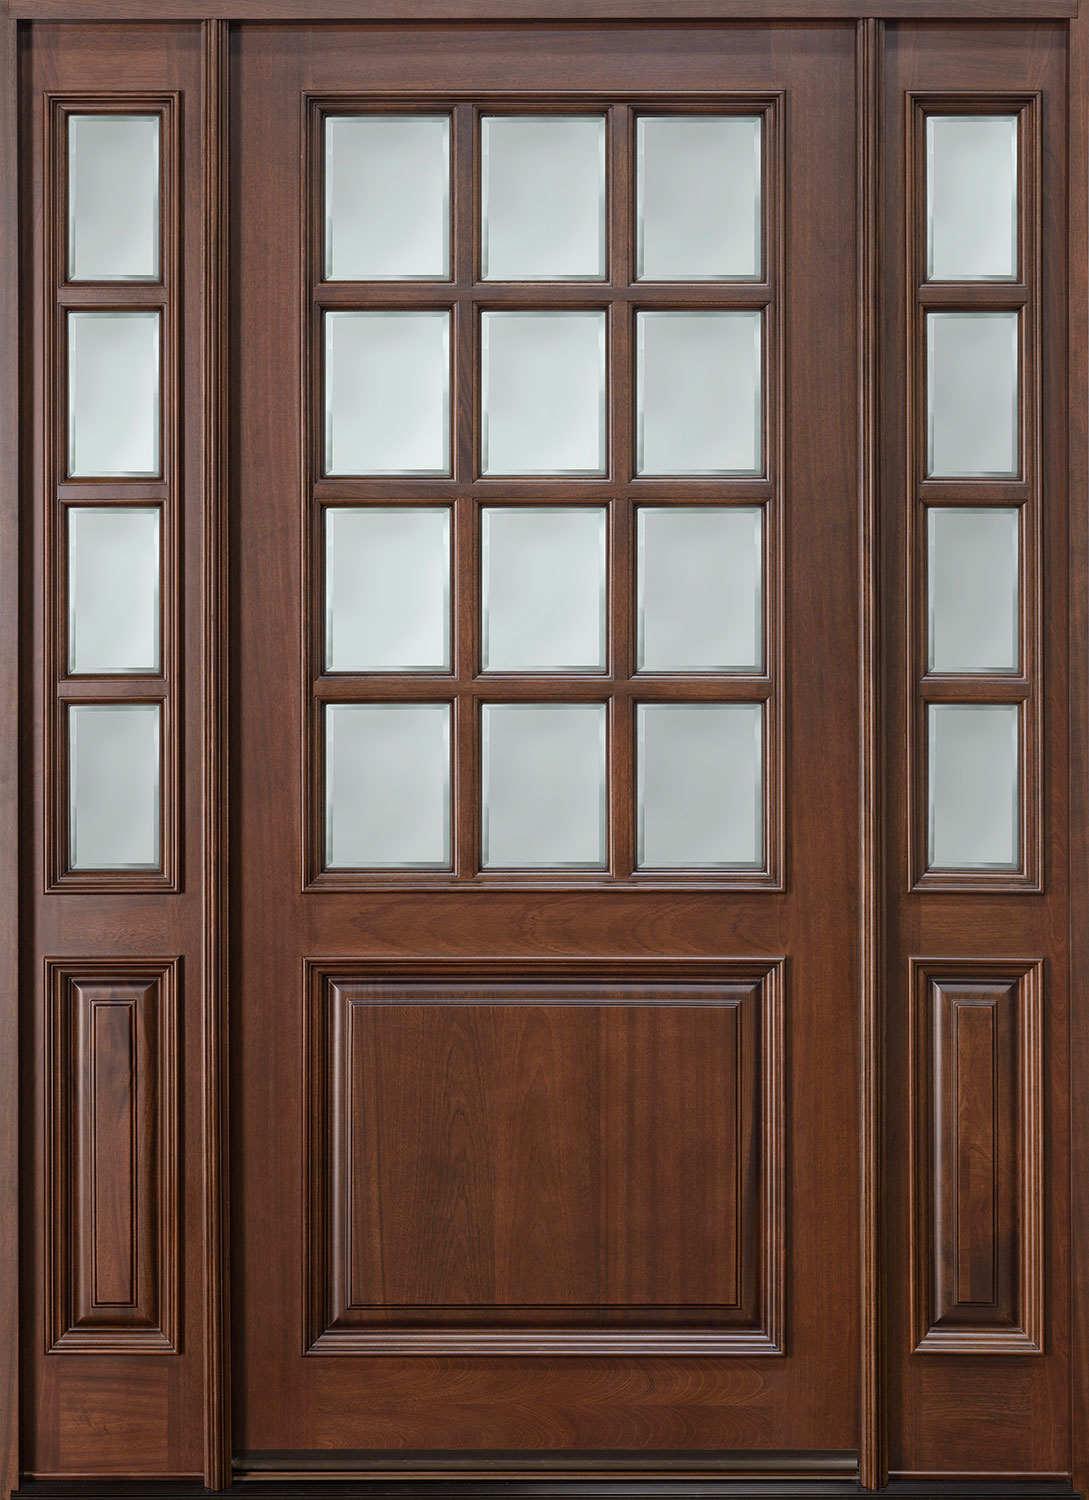 Classic Series Mahogany Wood Front Door  - GD-012W 2SL